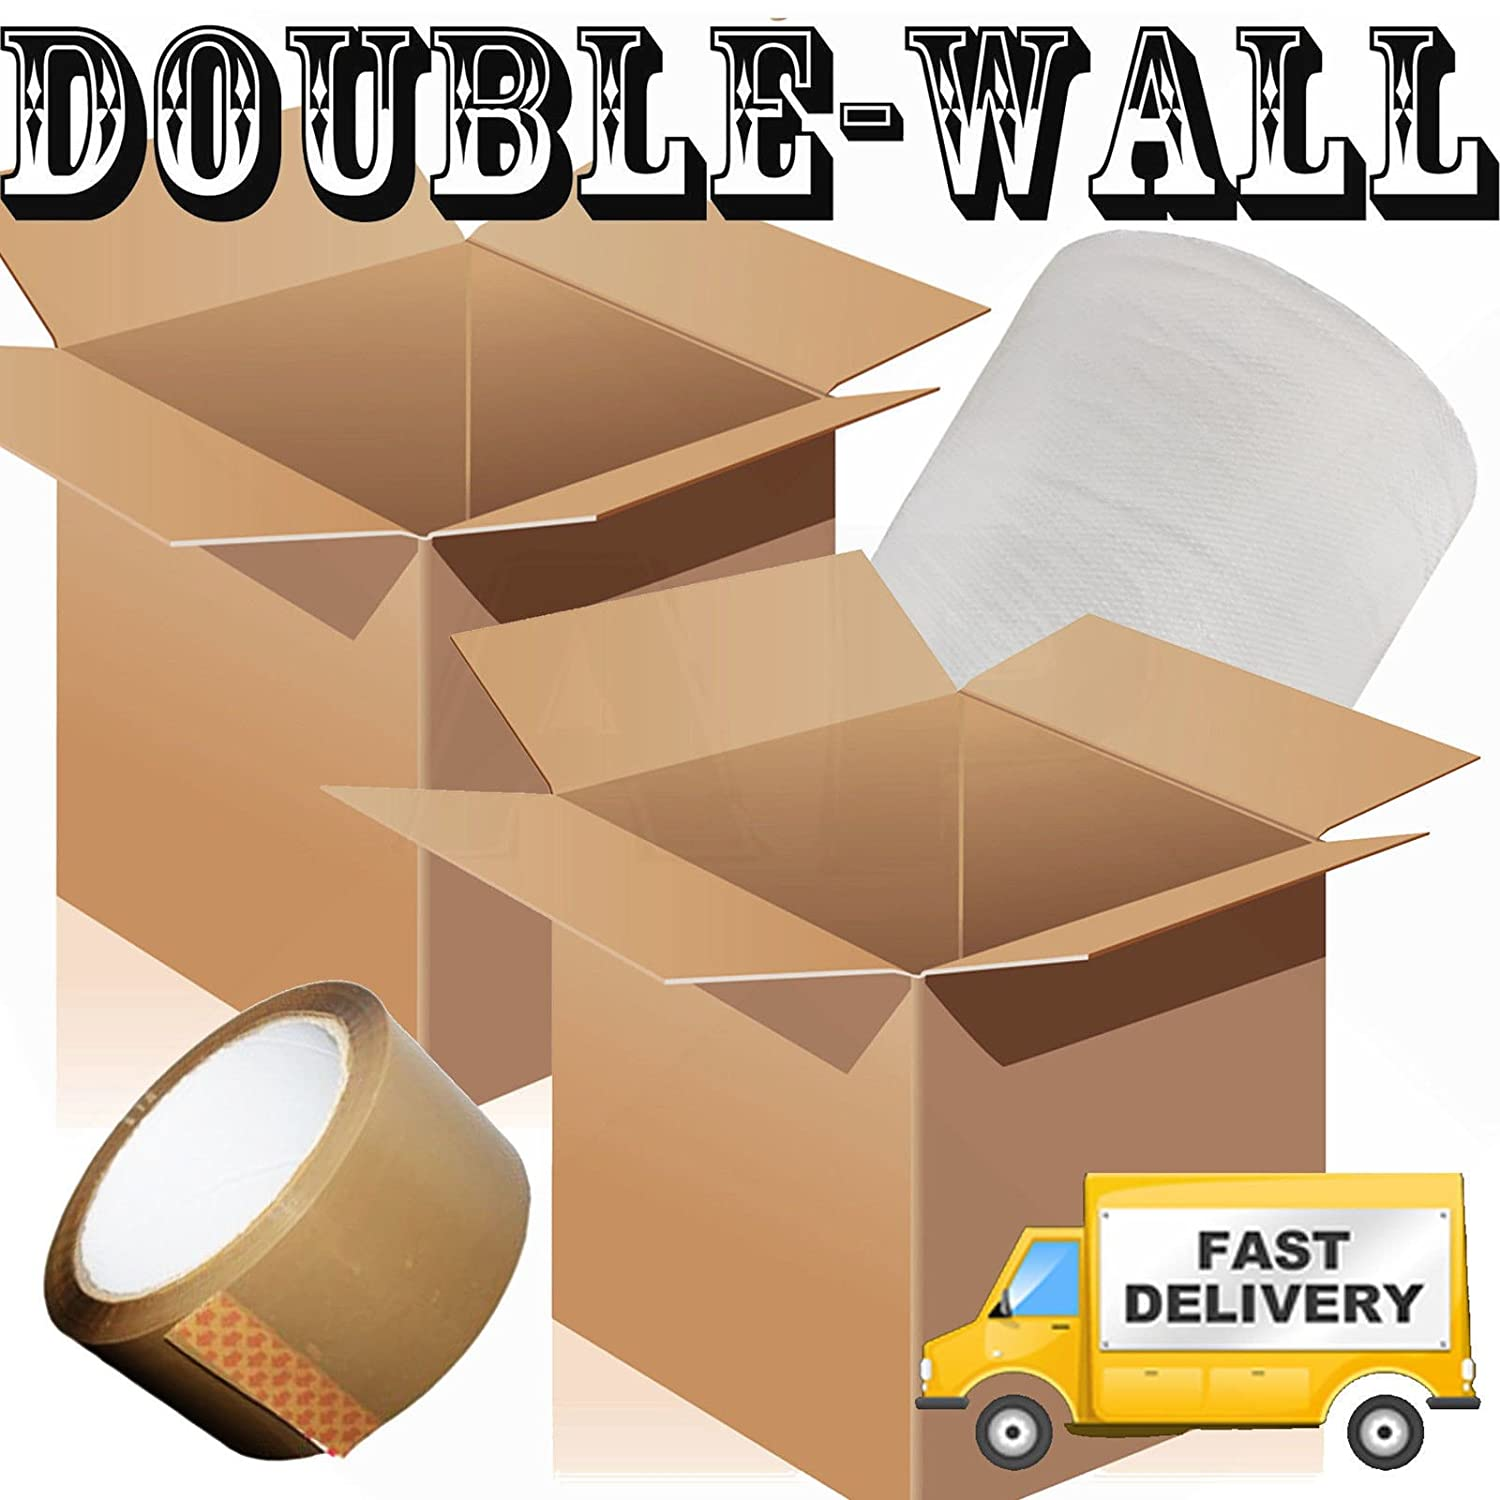 10 X LARGE DOUBLE WALL Box Pack Cardboard House Moving Boxes - Removal Packing J4 Packaging